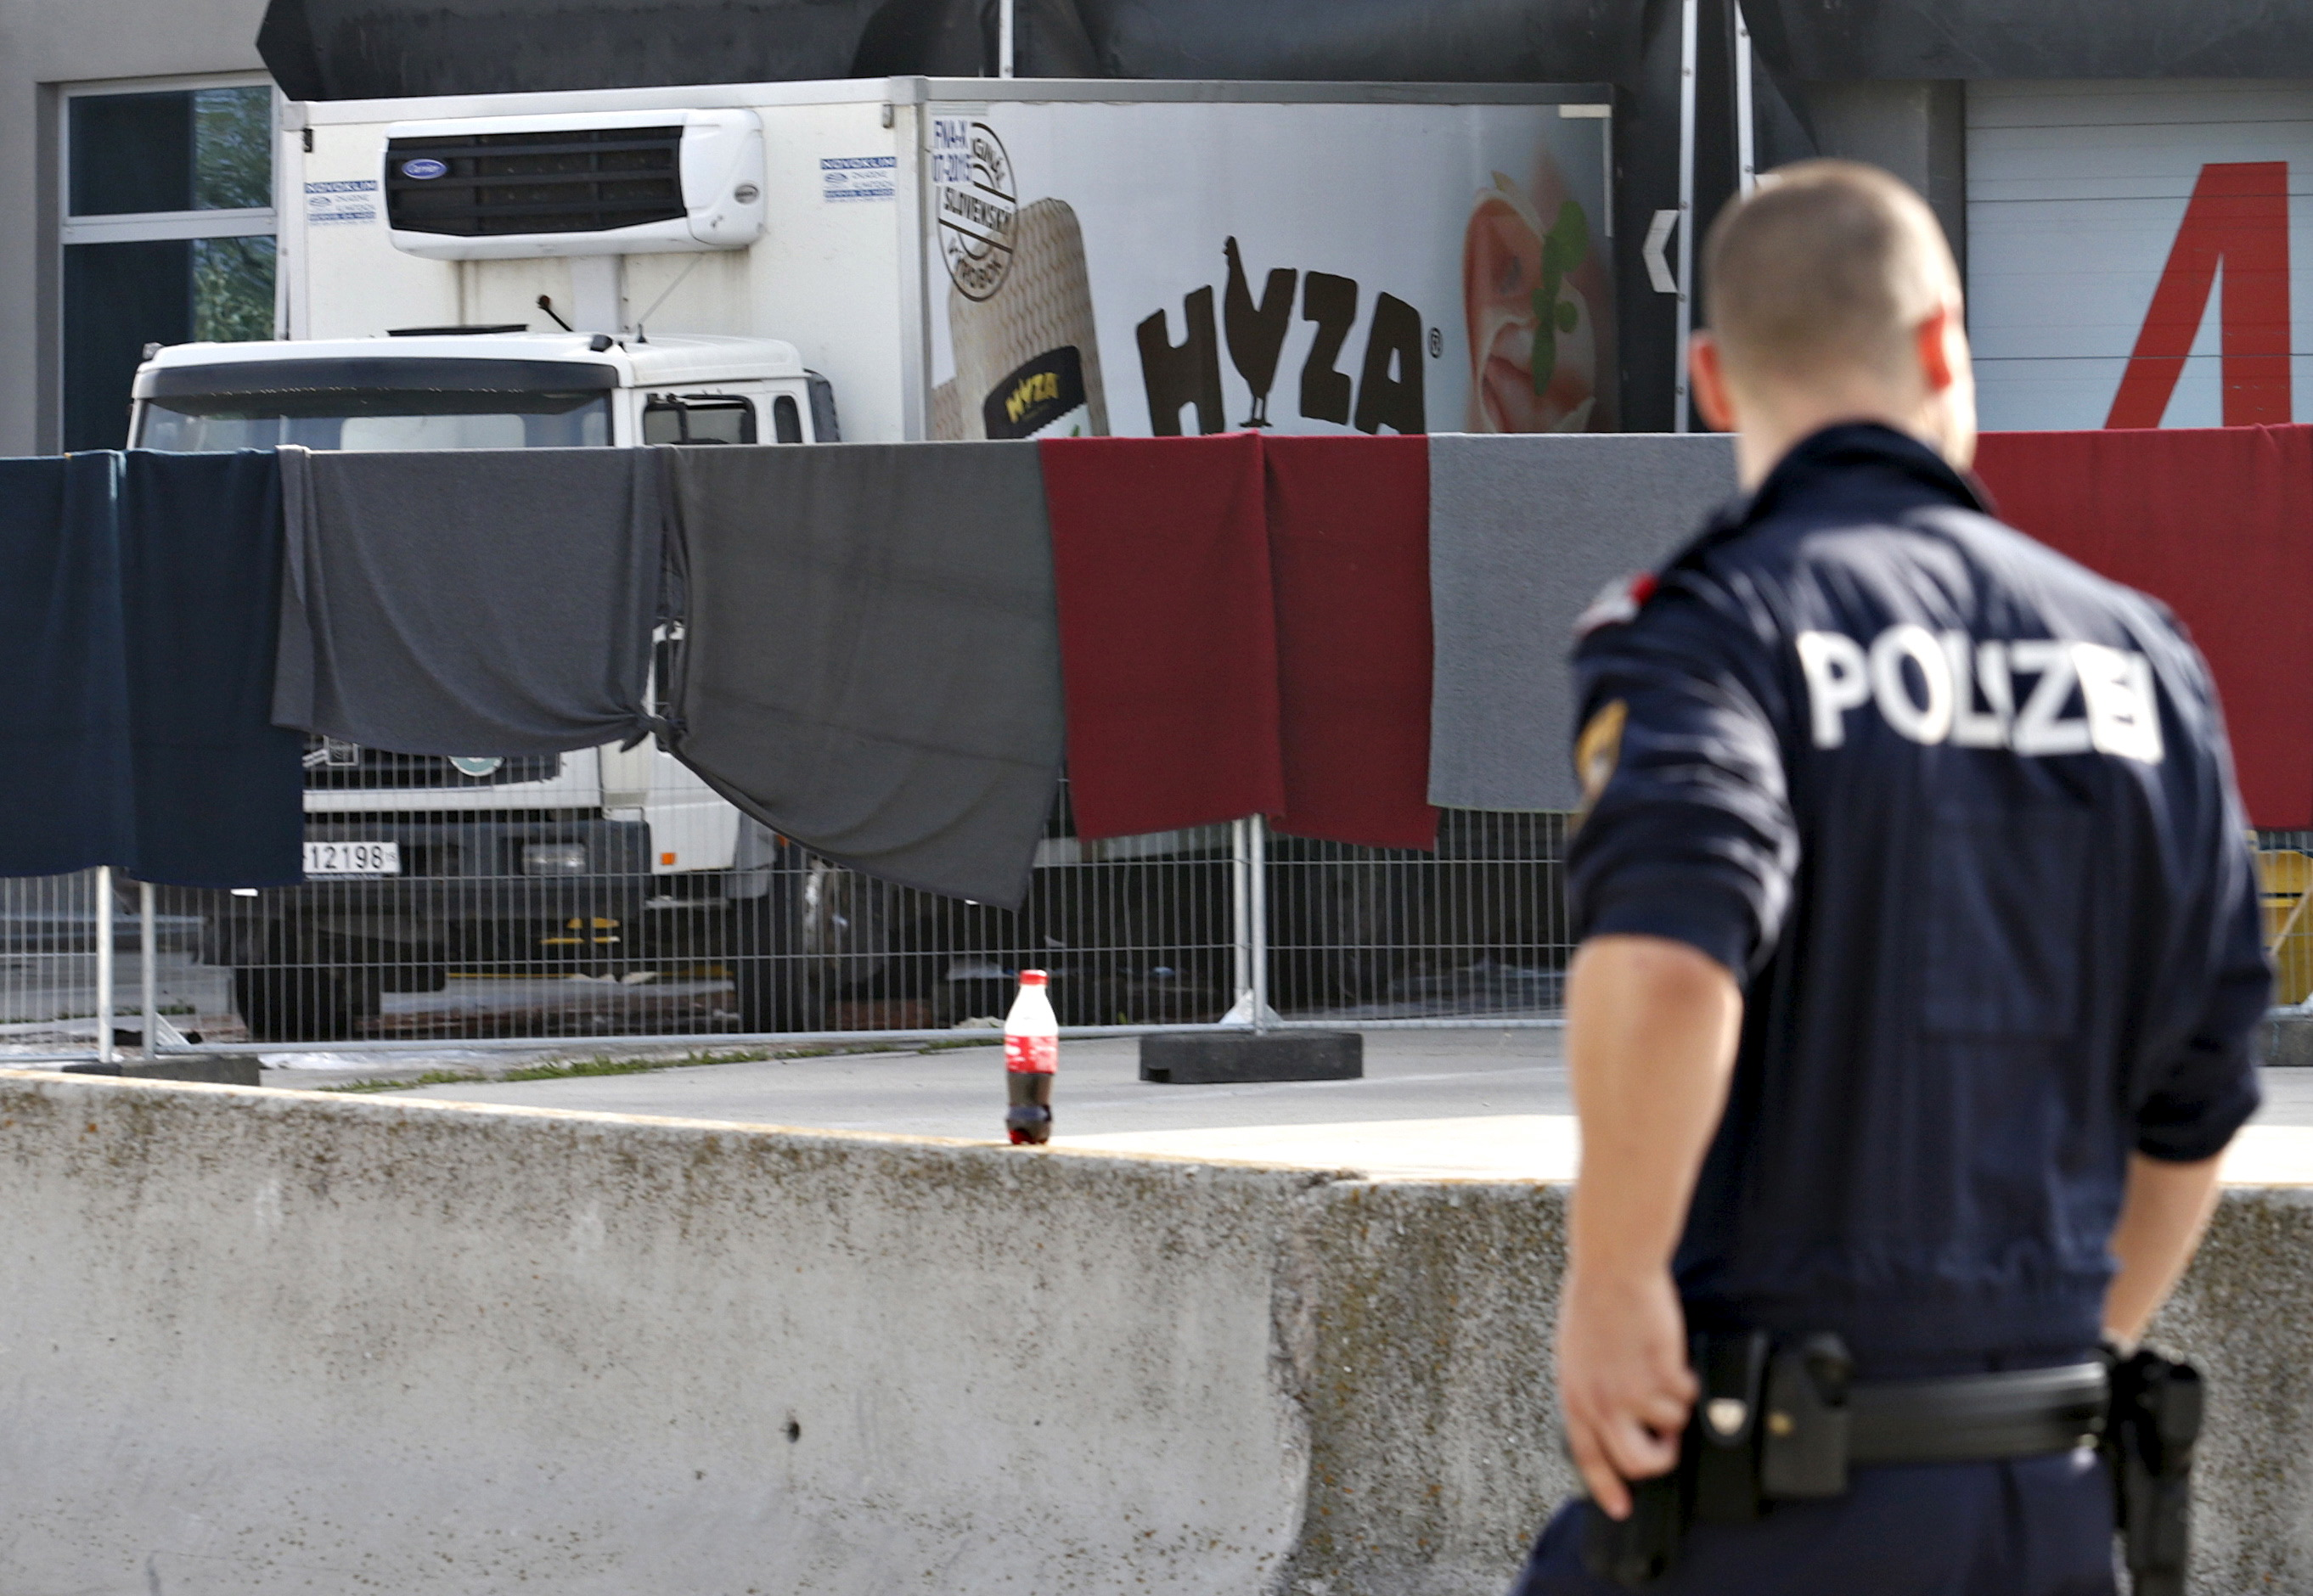 A police officer walks by a truck discovered abandoned on an Austrian motorway containing more than 70 bodies as it sits at a customs building with refrigeration facilities in the village of Nickelsdorf, Austria, August 28, 2015. The abandoned refrigerated lorry was found by an Austrian motorway patrol near the Hungarian border, with fluids from the decomposing bodies seeping from its back door. REUTERS/Heinz-Peter Bader - RTX1PZP3